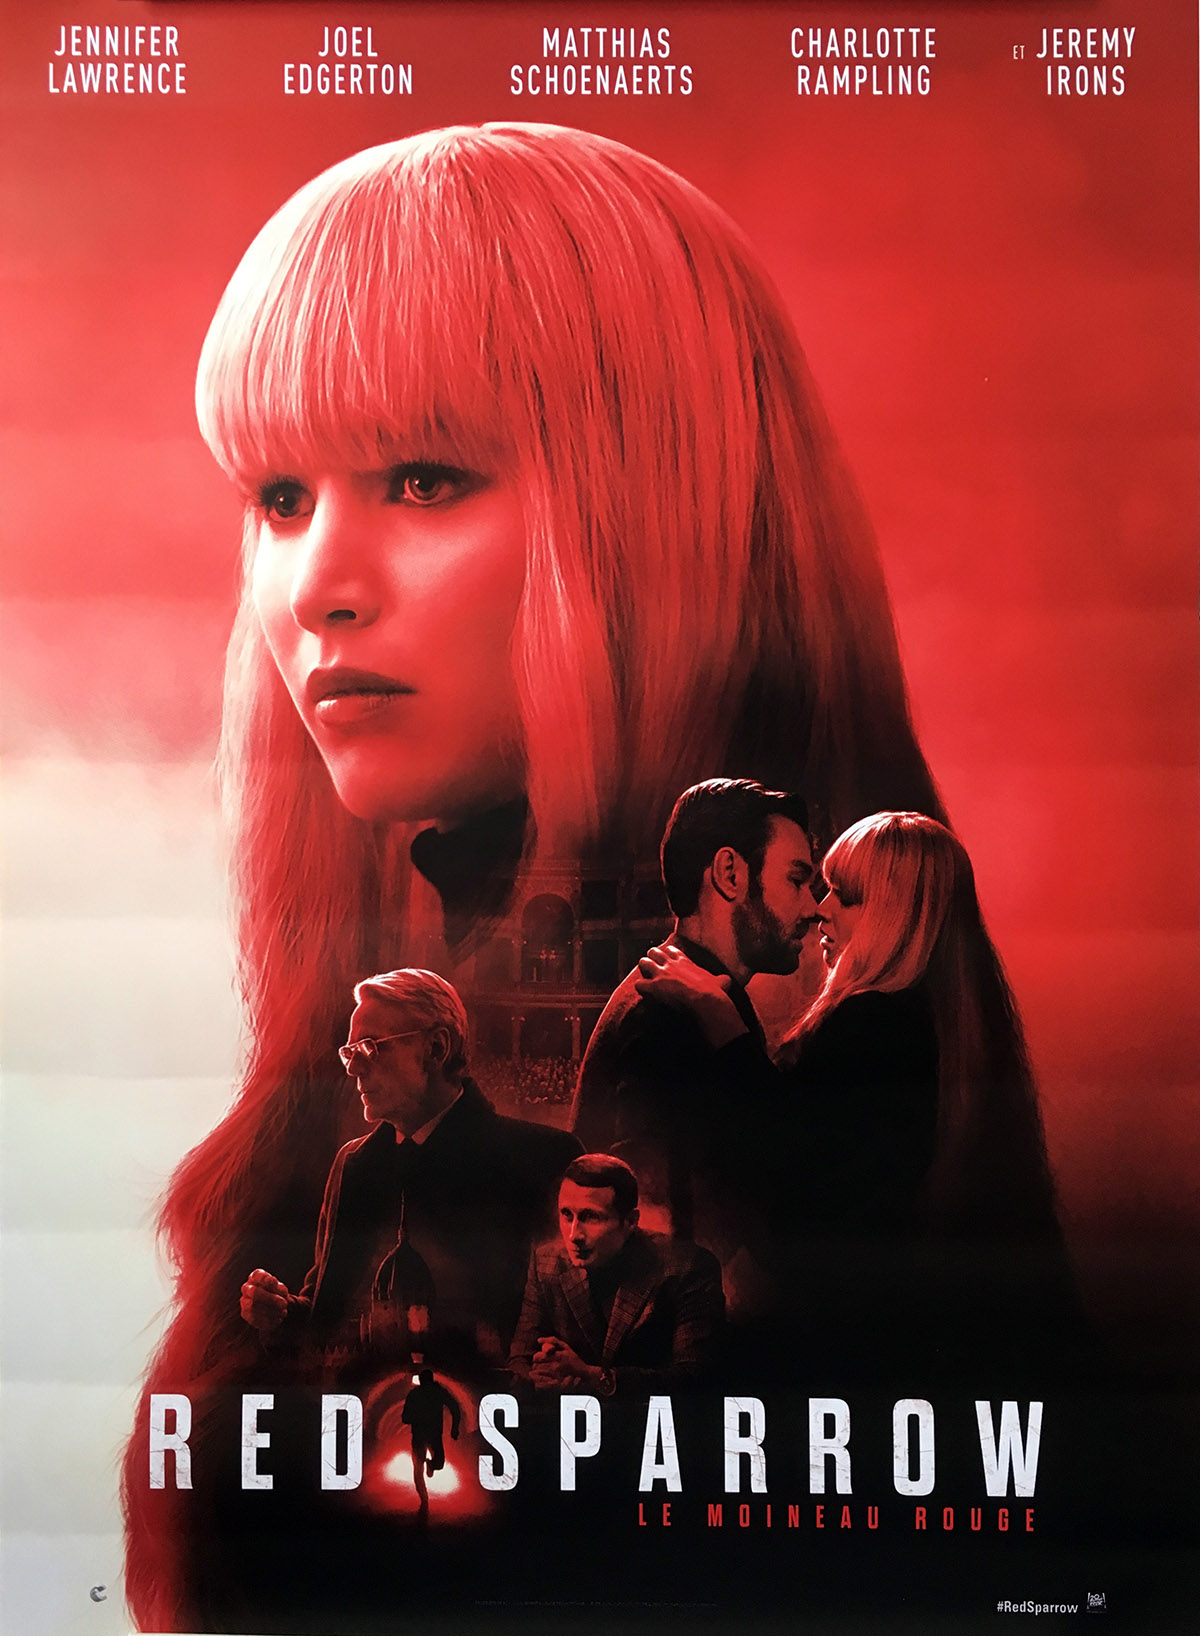 Red Sparrow Movie Poster 15x21 In